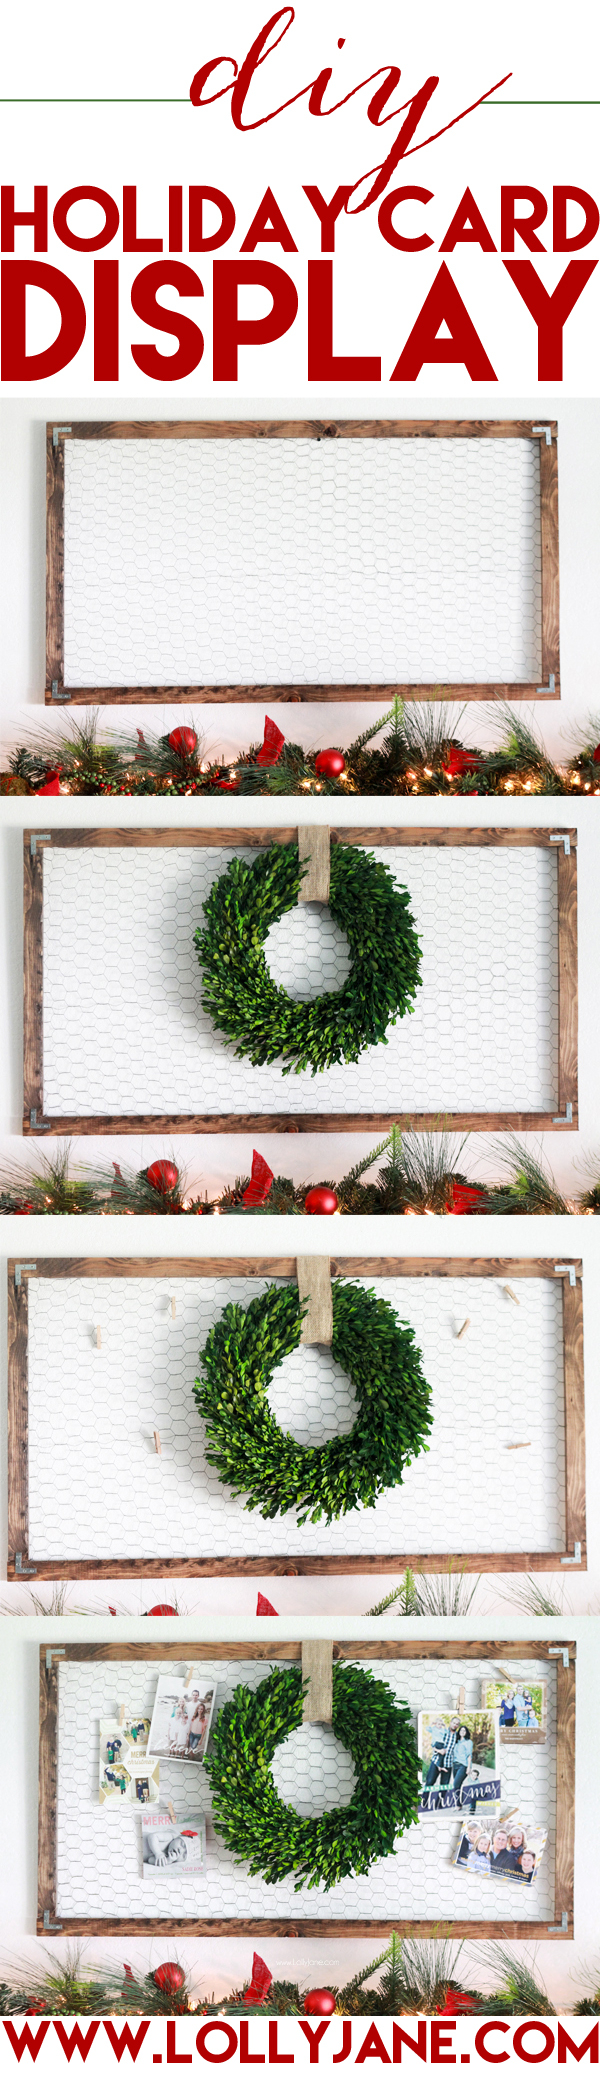 25 Holiday Card Displays